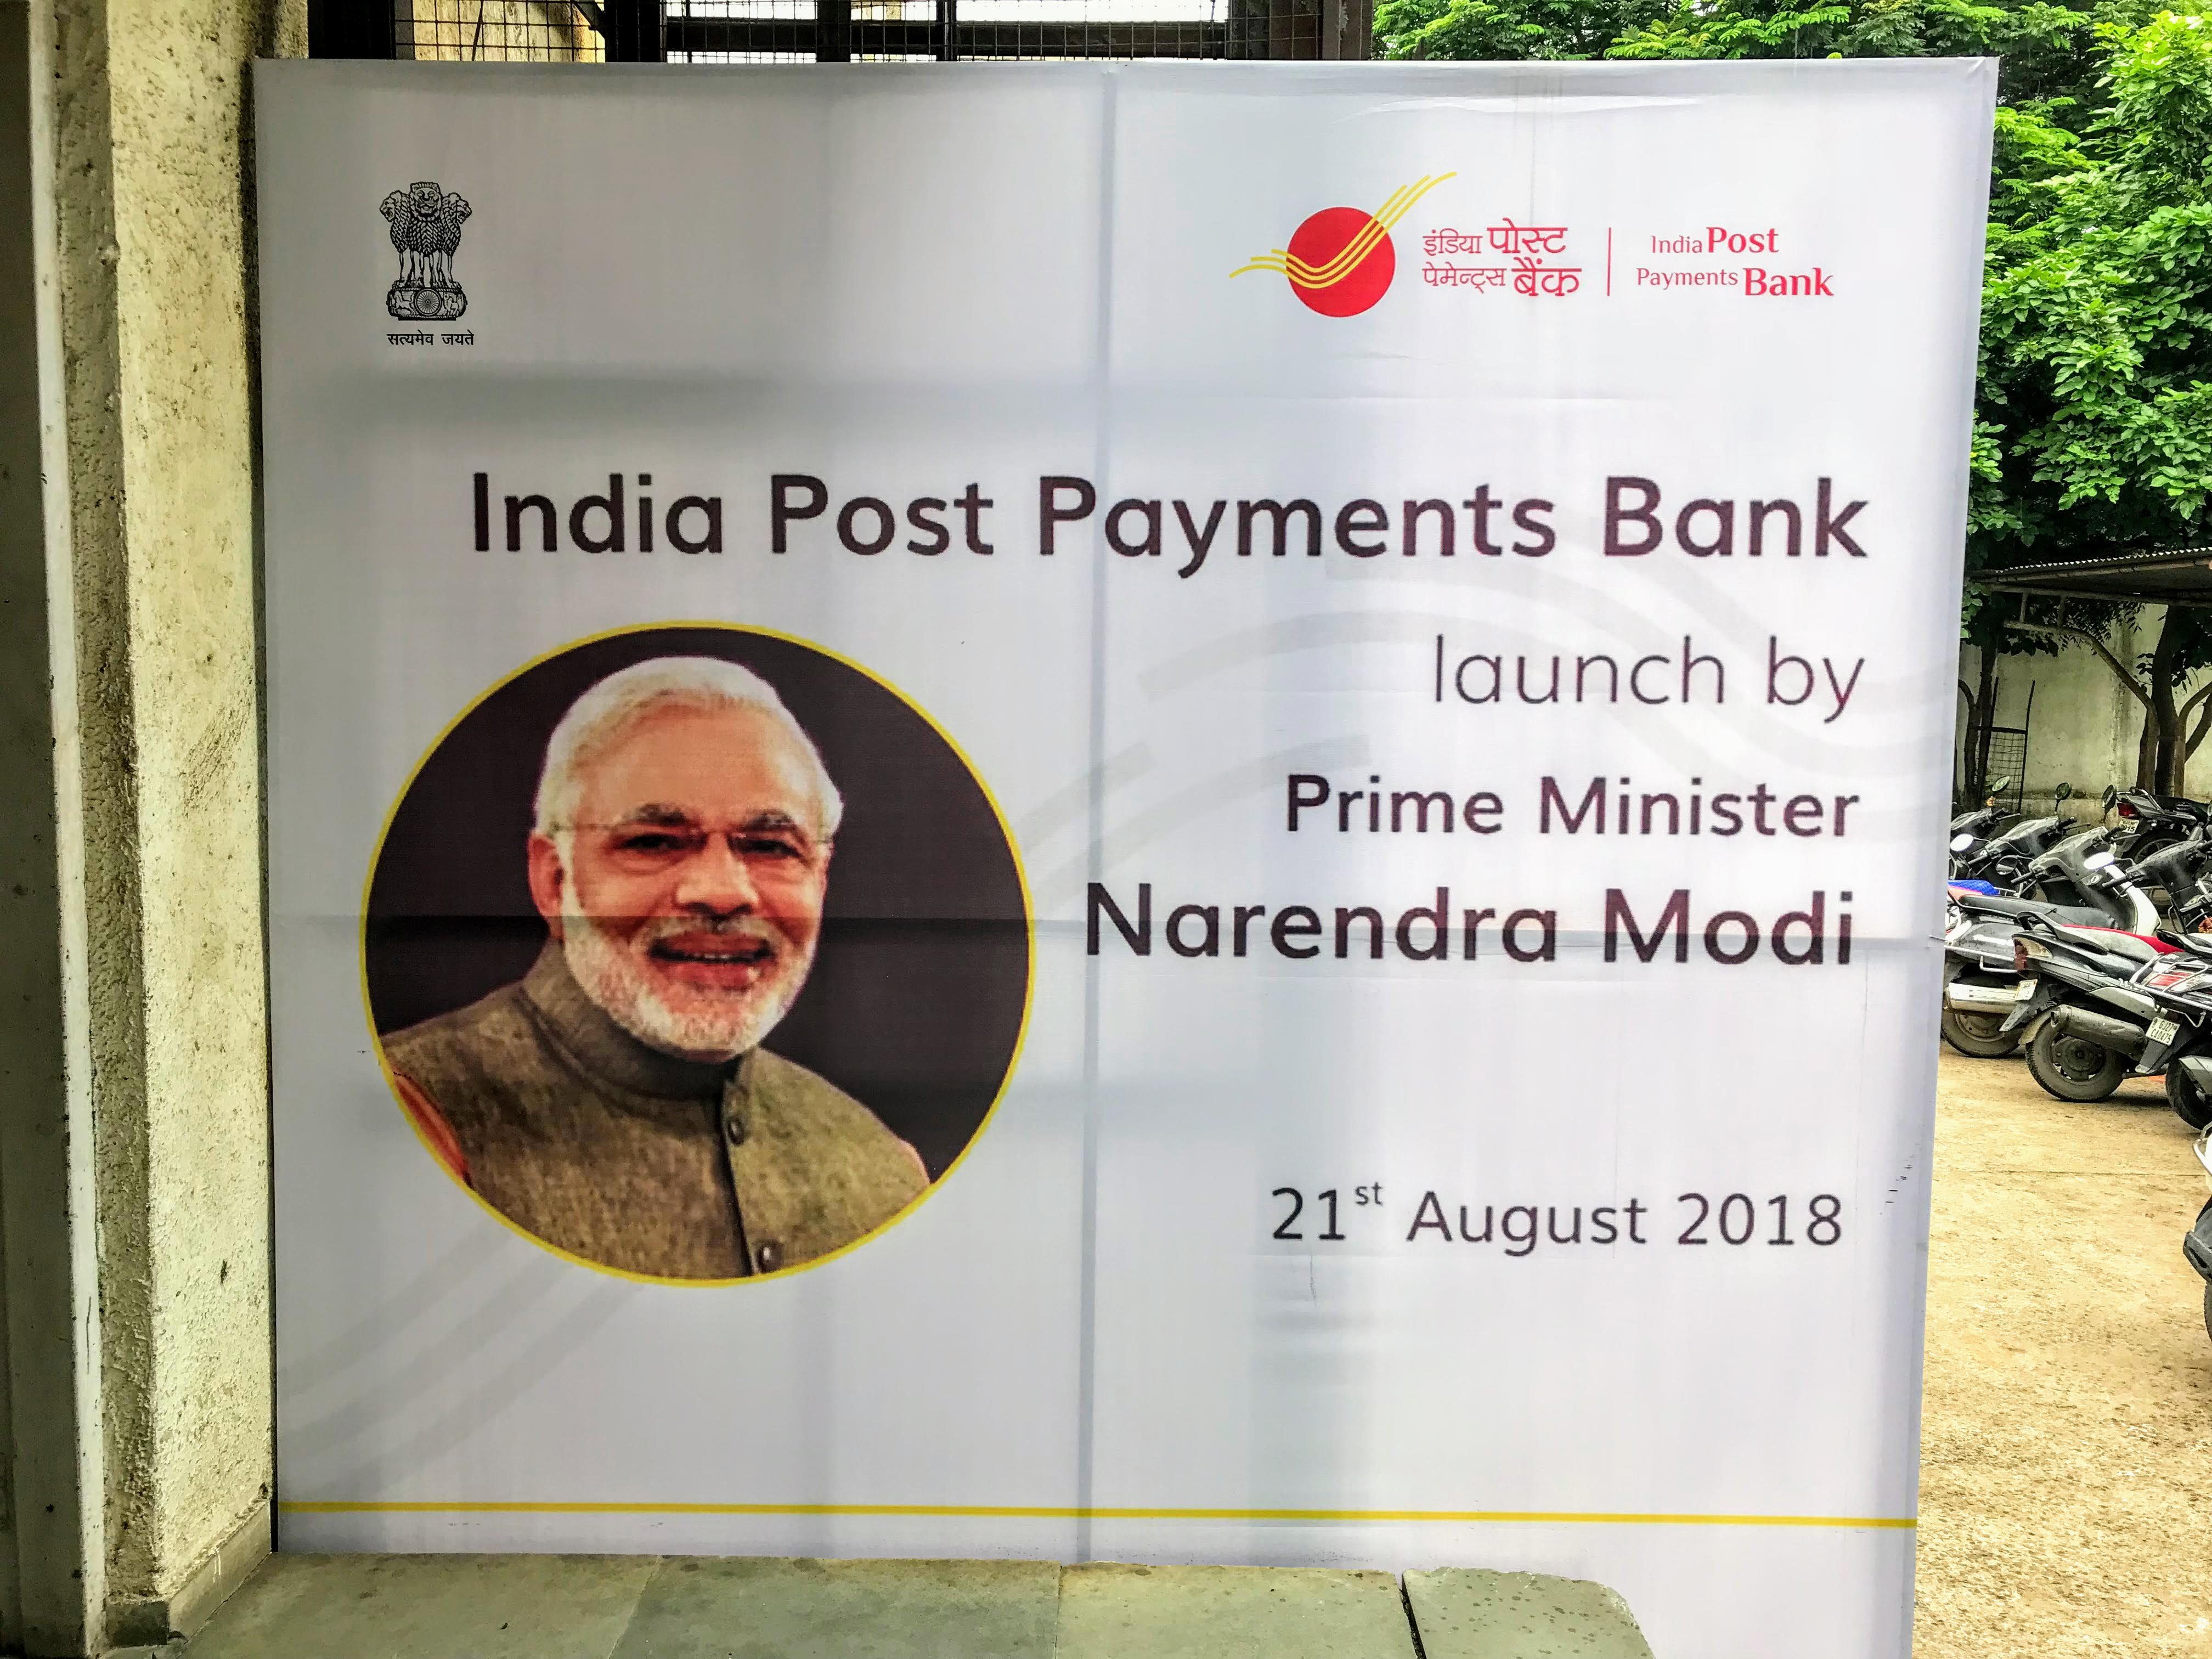 The launch of IPPB by PM Modi was put off from August 21, 2018 to September 1, 2018. Photo courtesy: Kunal Trivedi